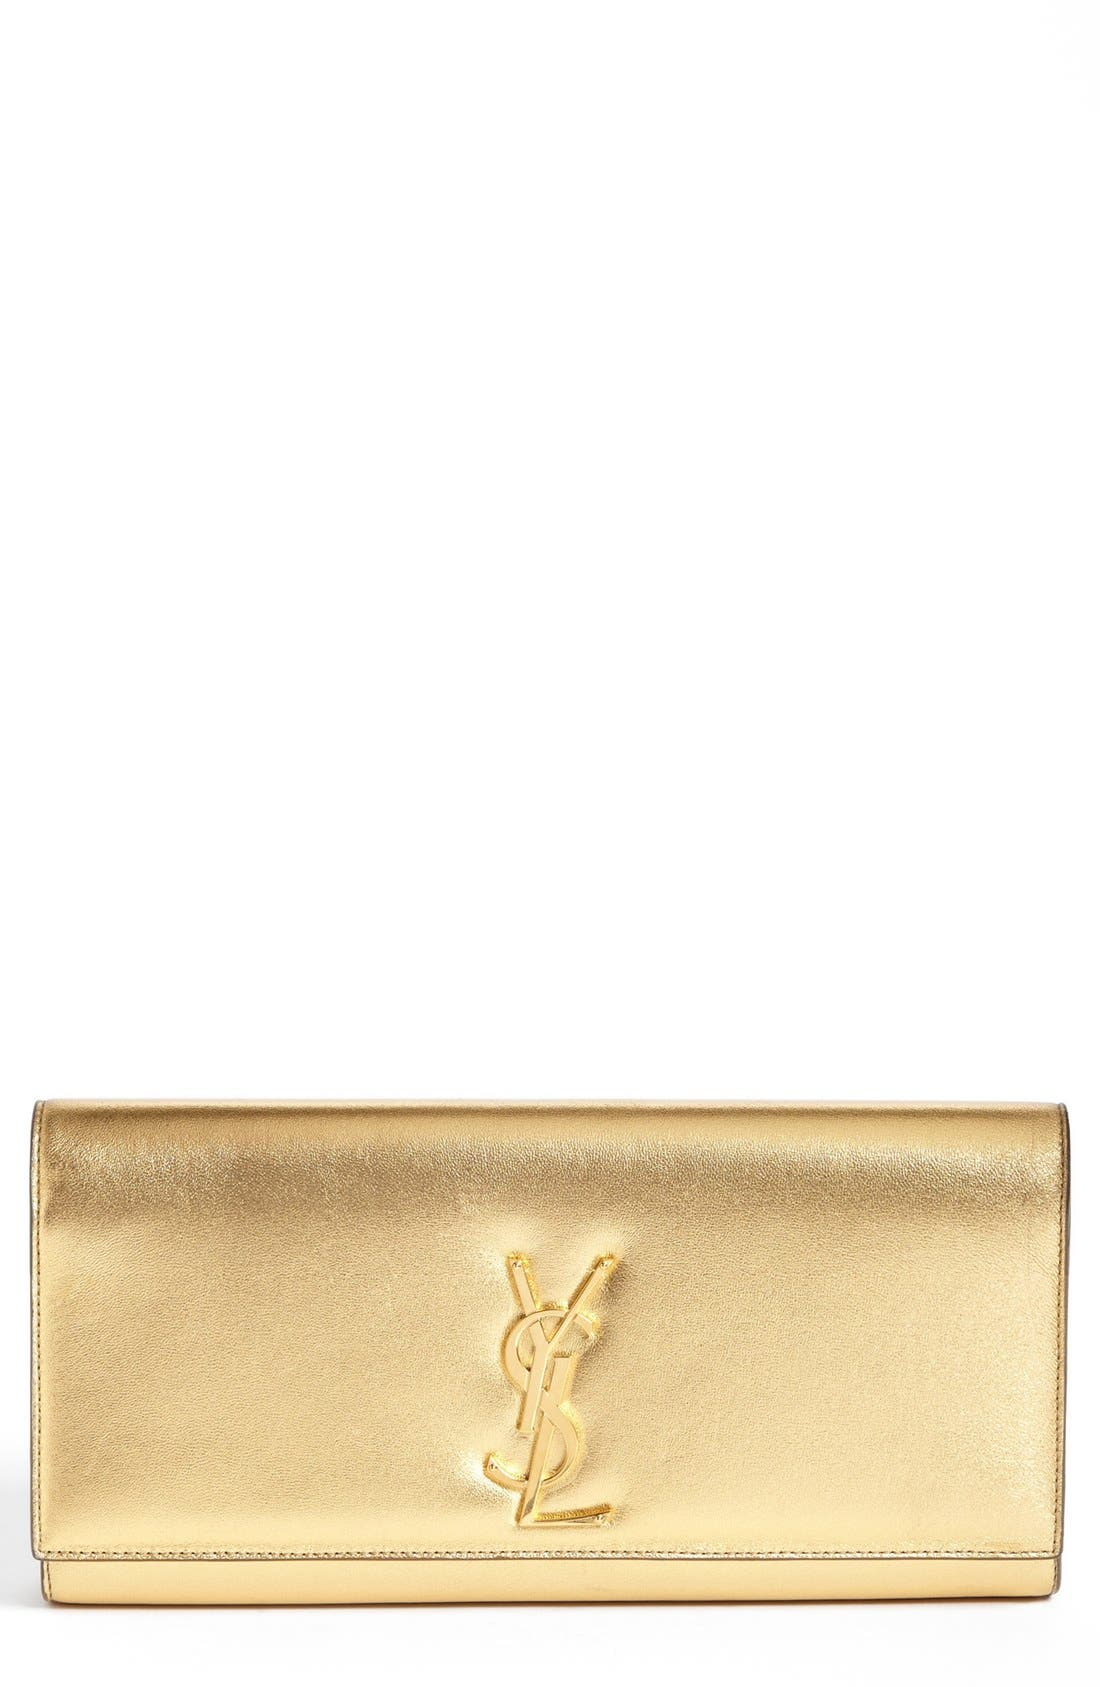 'Cassandre' Leather Clutch,                             Main thumbnail 1, color,                             710